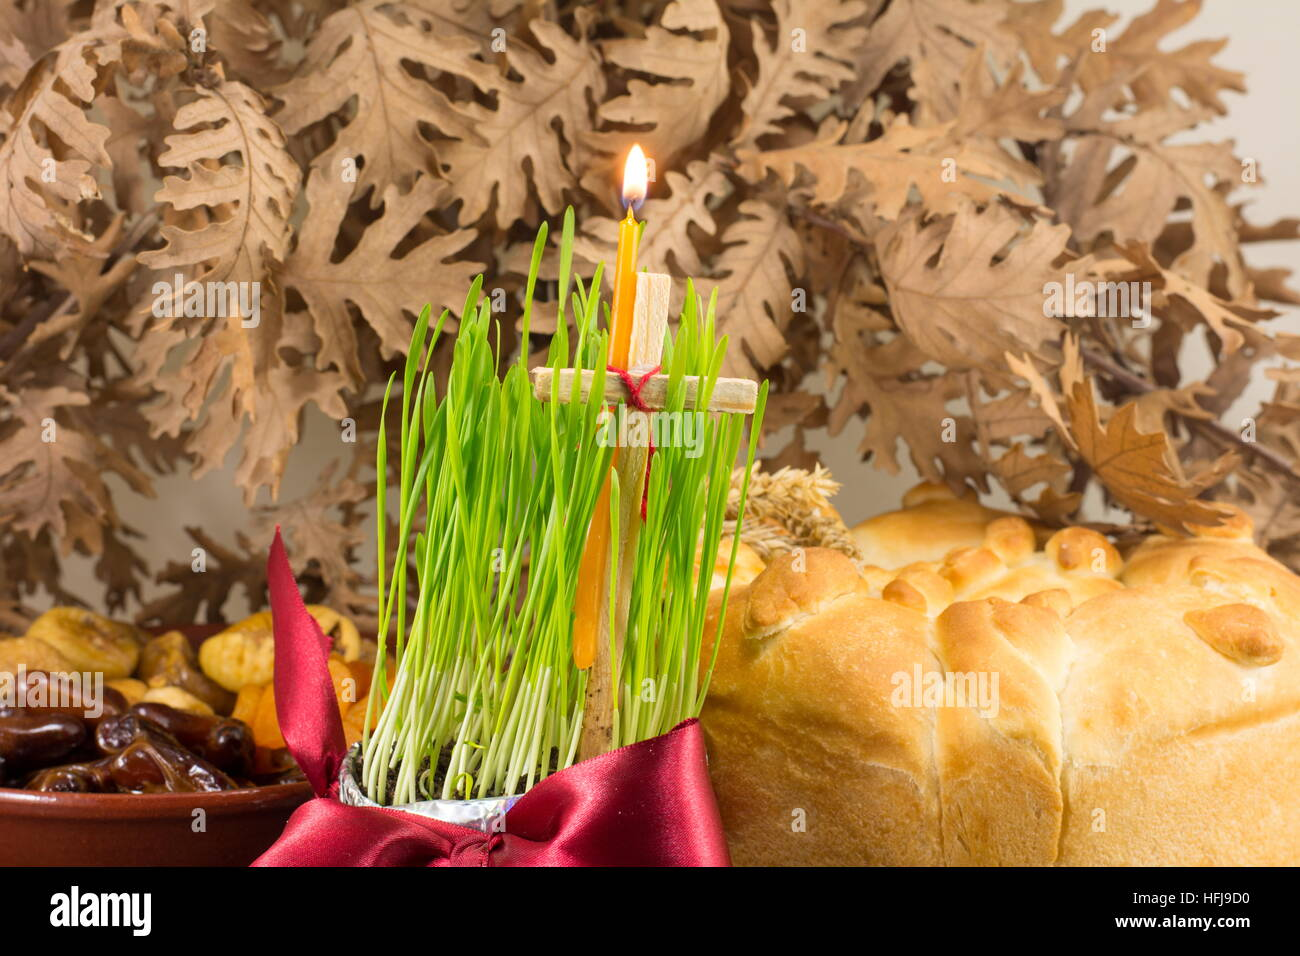 Weihnachten Orthodox.Orthodox Christmas Offerings With Growing Green Wheat Stock Photo